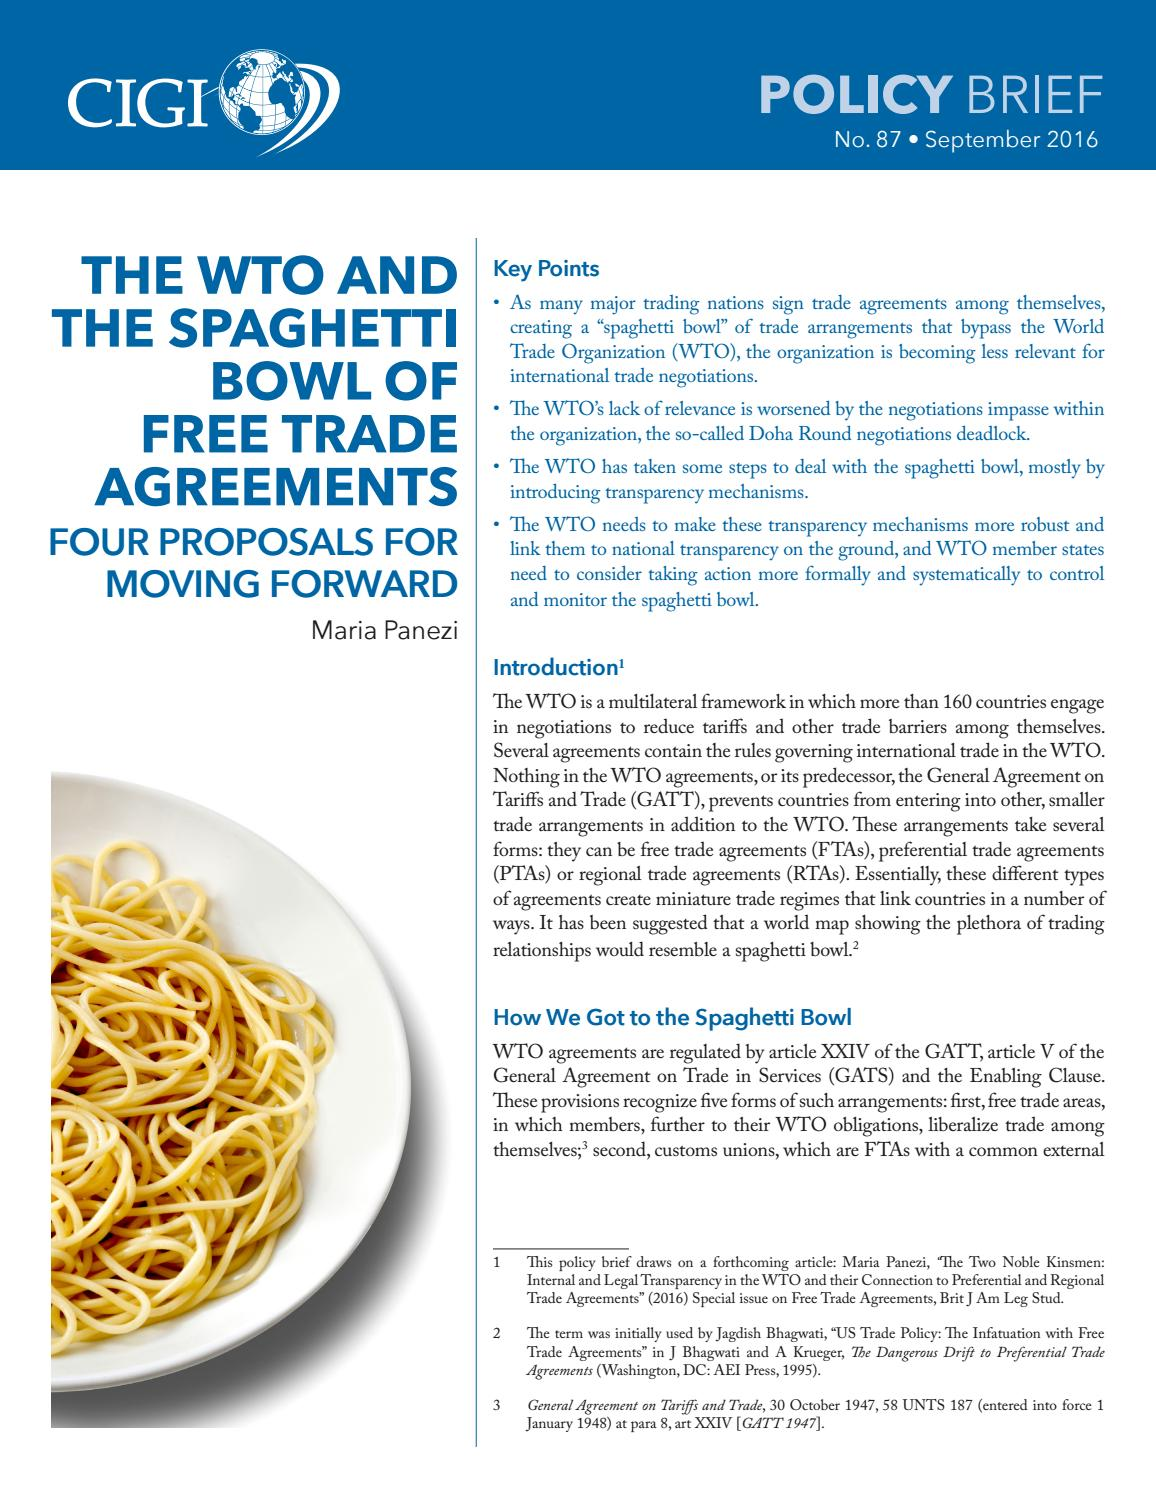 The Wto And The Spaghetti Bowl Of Free Trade Agreements Four